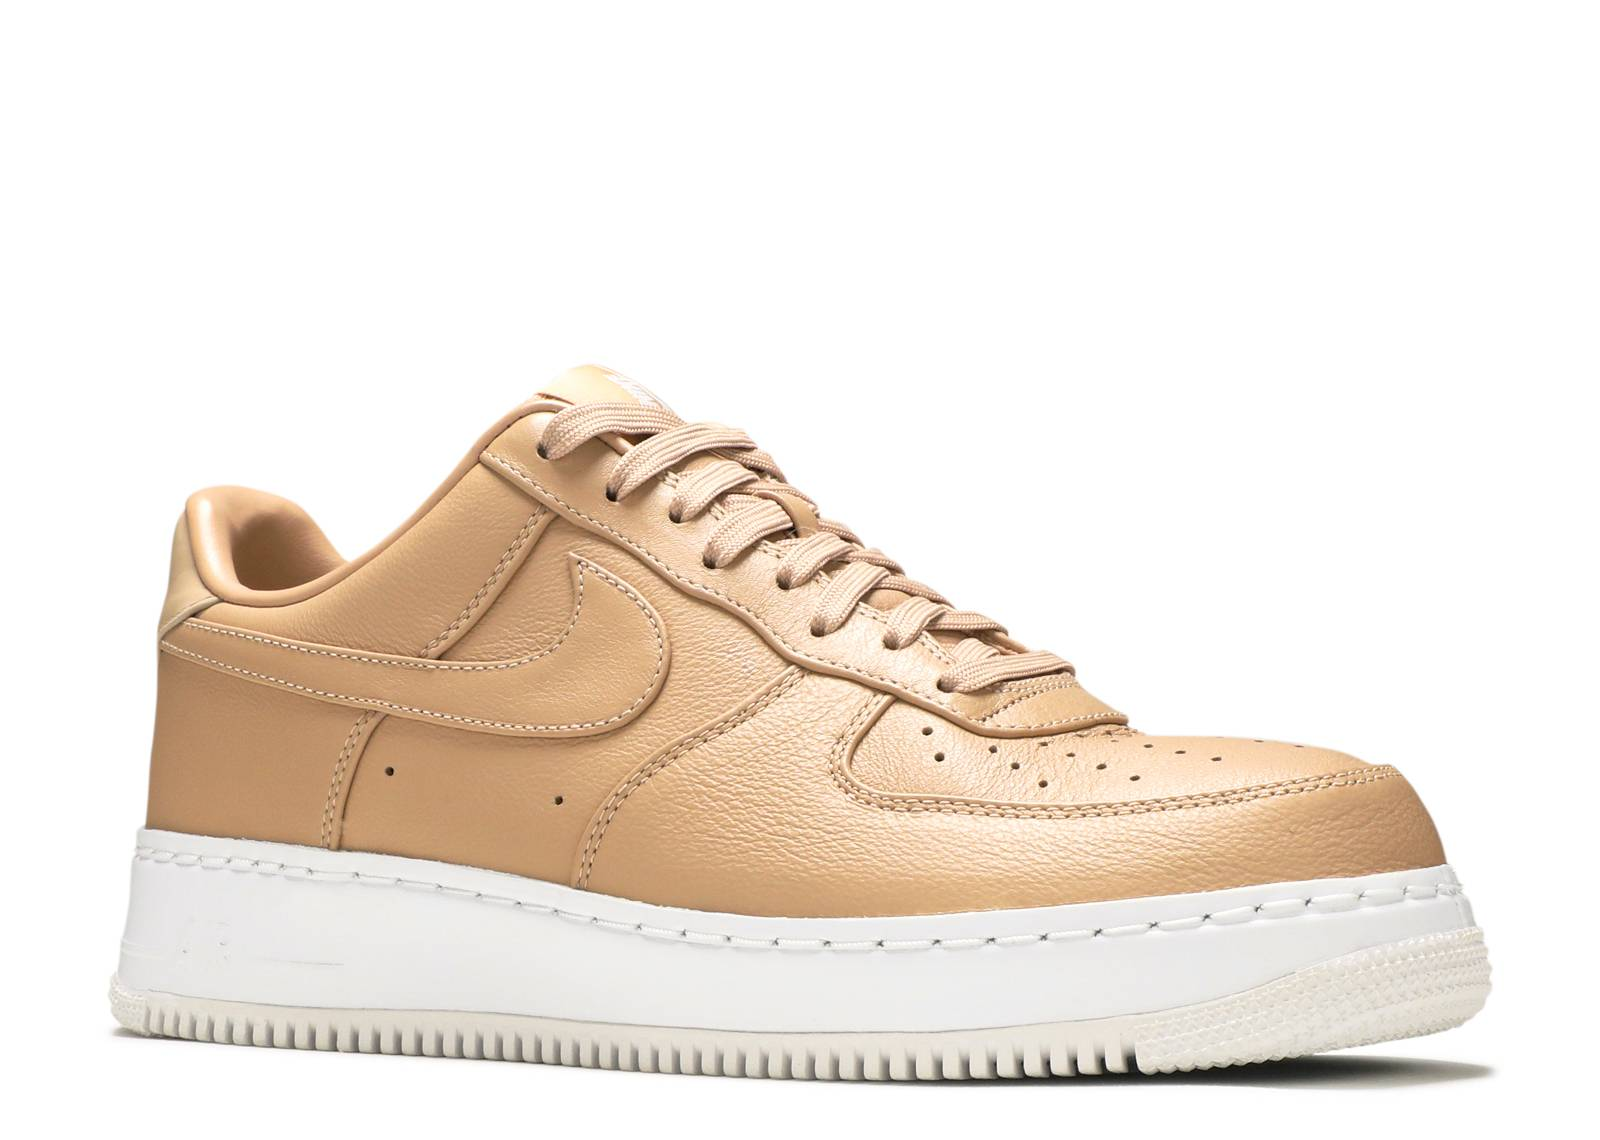 nikelab air force 1 low nike 555106 200 vachetta tan. Black Bedroom Furniture Sets. Home Design Ideas